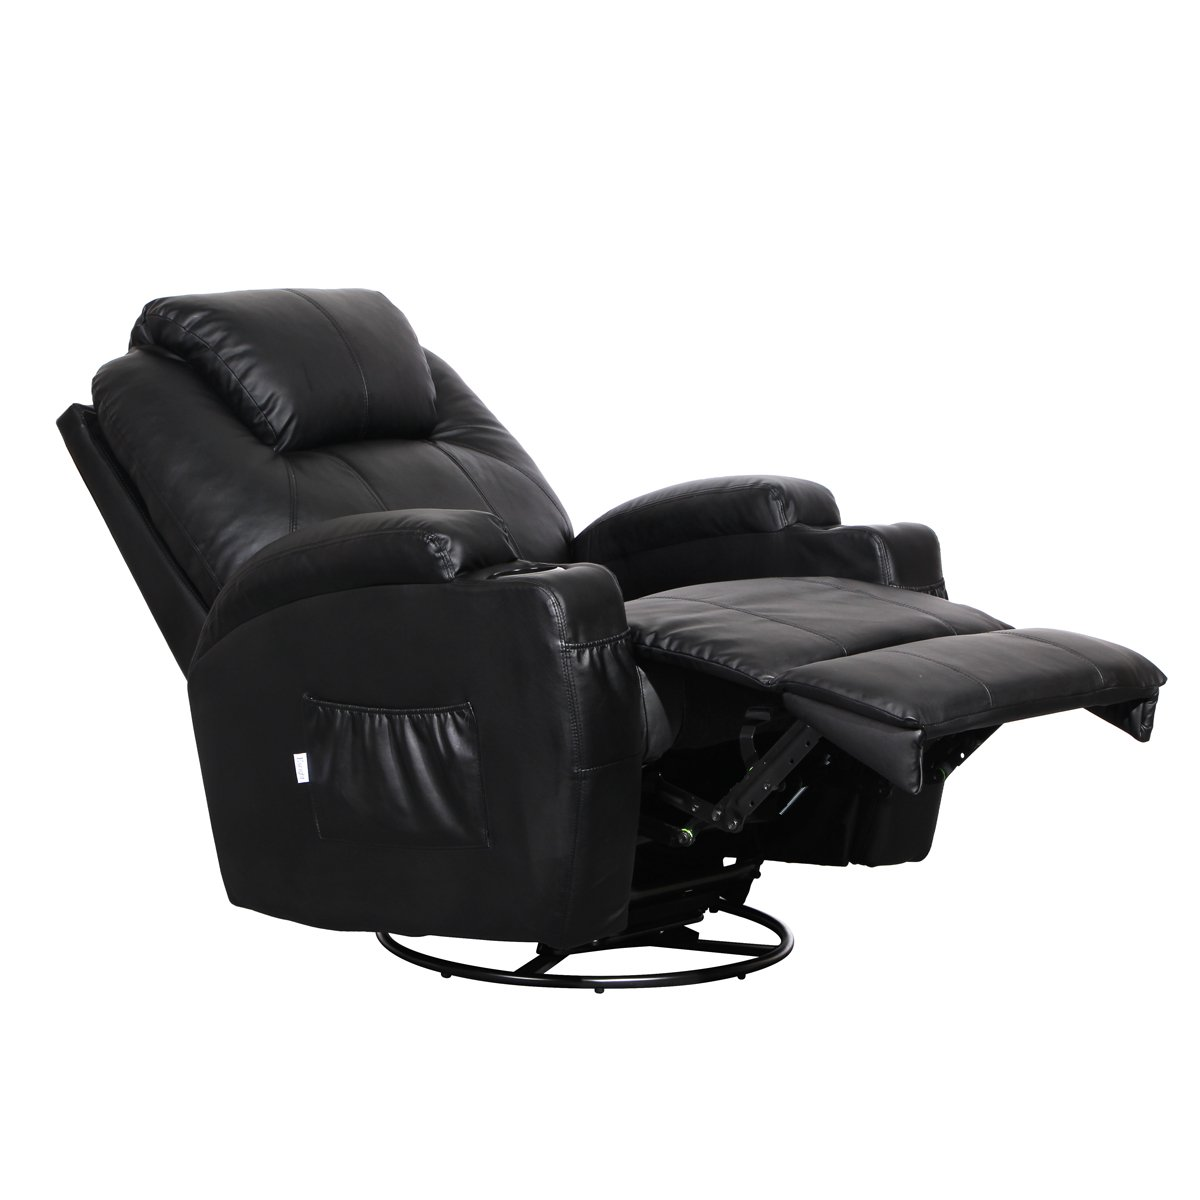 Esright Massage Recliner Leather Chair Review